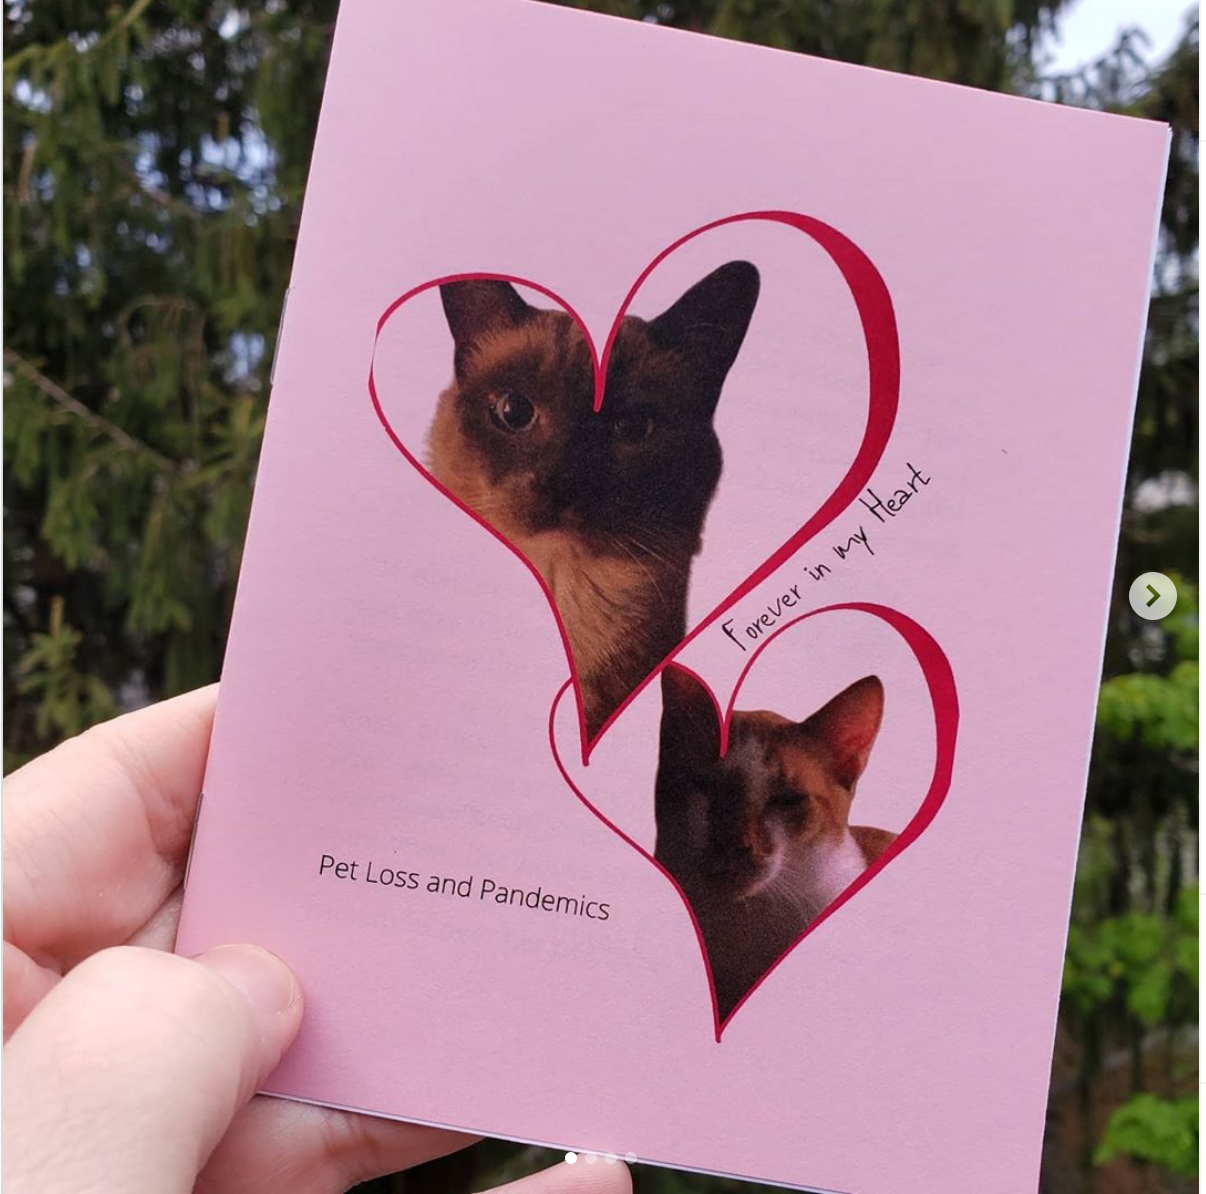 photo of person holding Forever in My Heart zine. Pink cover, photos of cats.